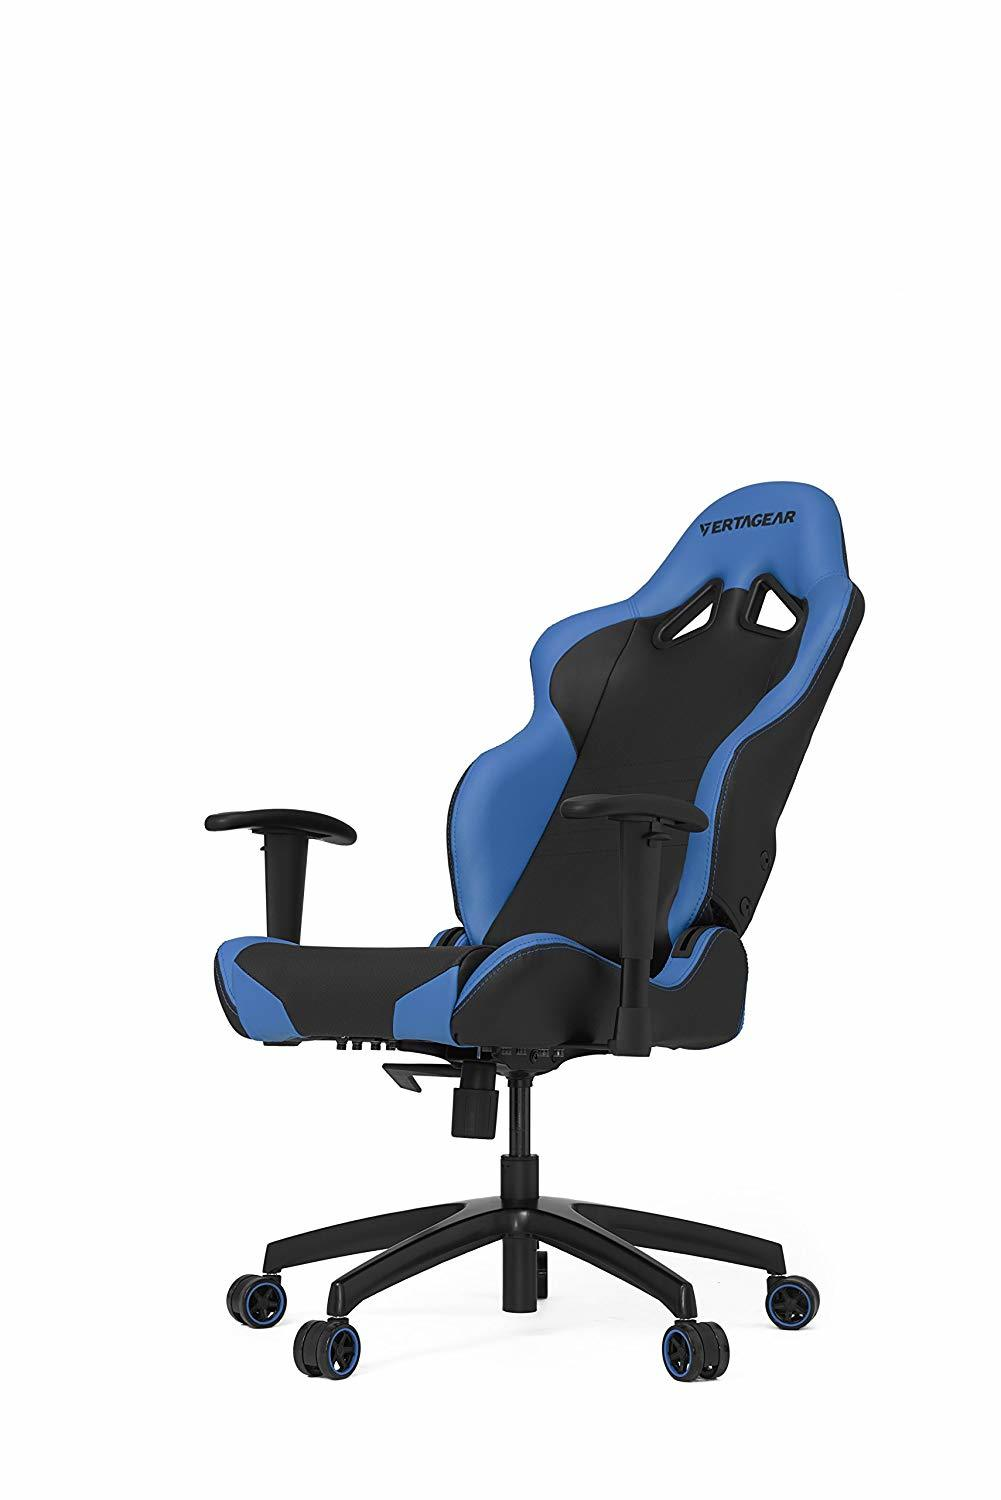 Vertagear Racing Series S-Line SL2000 Gaming Chair - Black/Blue for  image